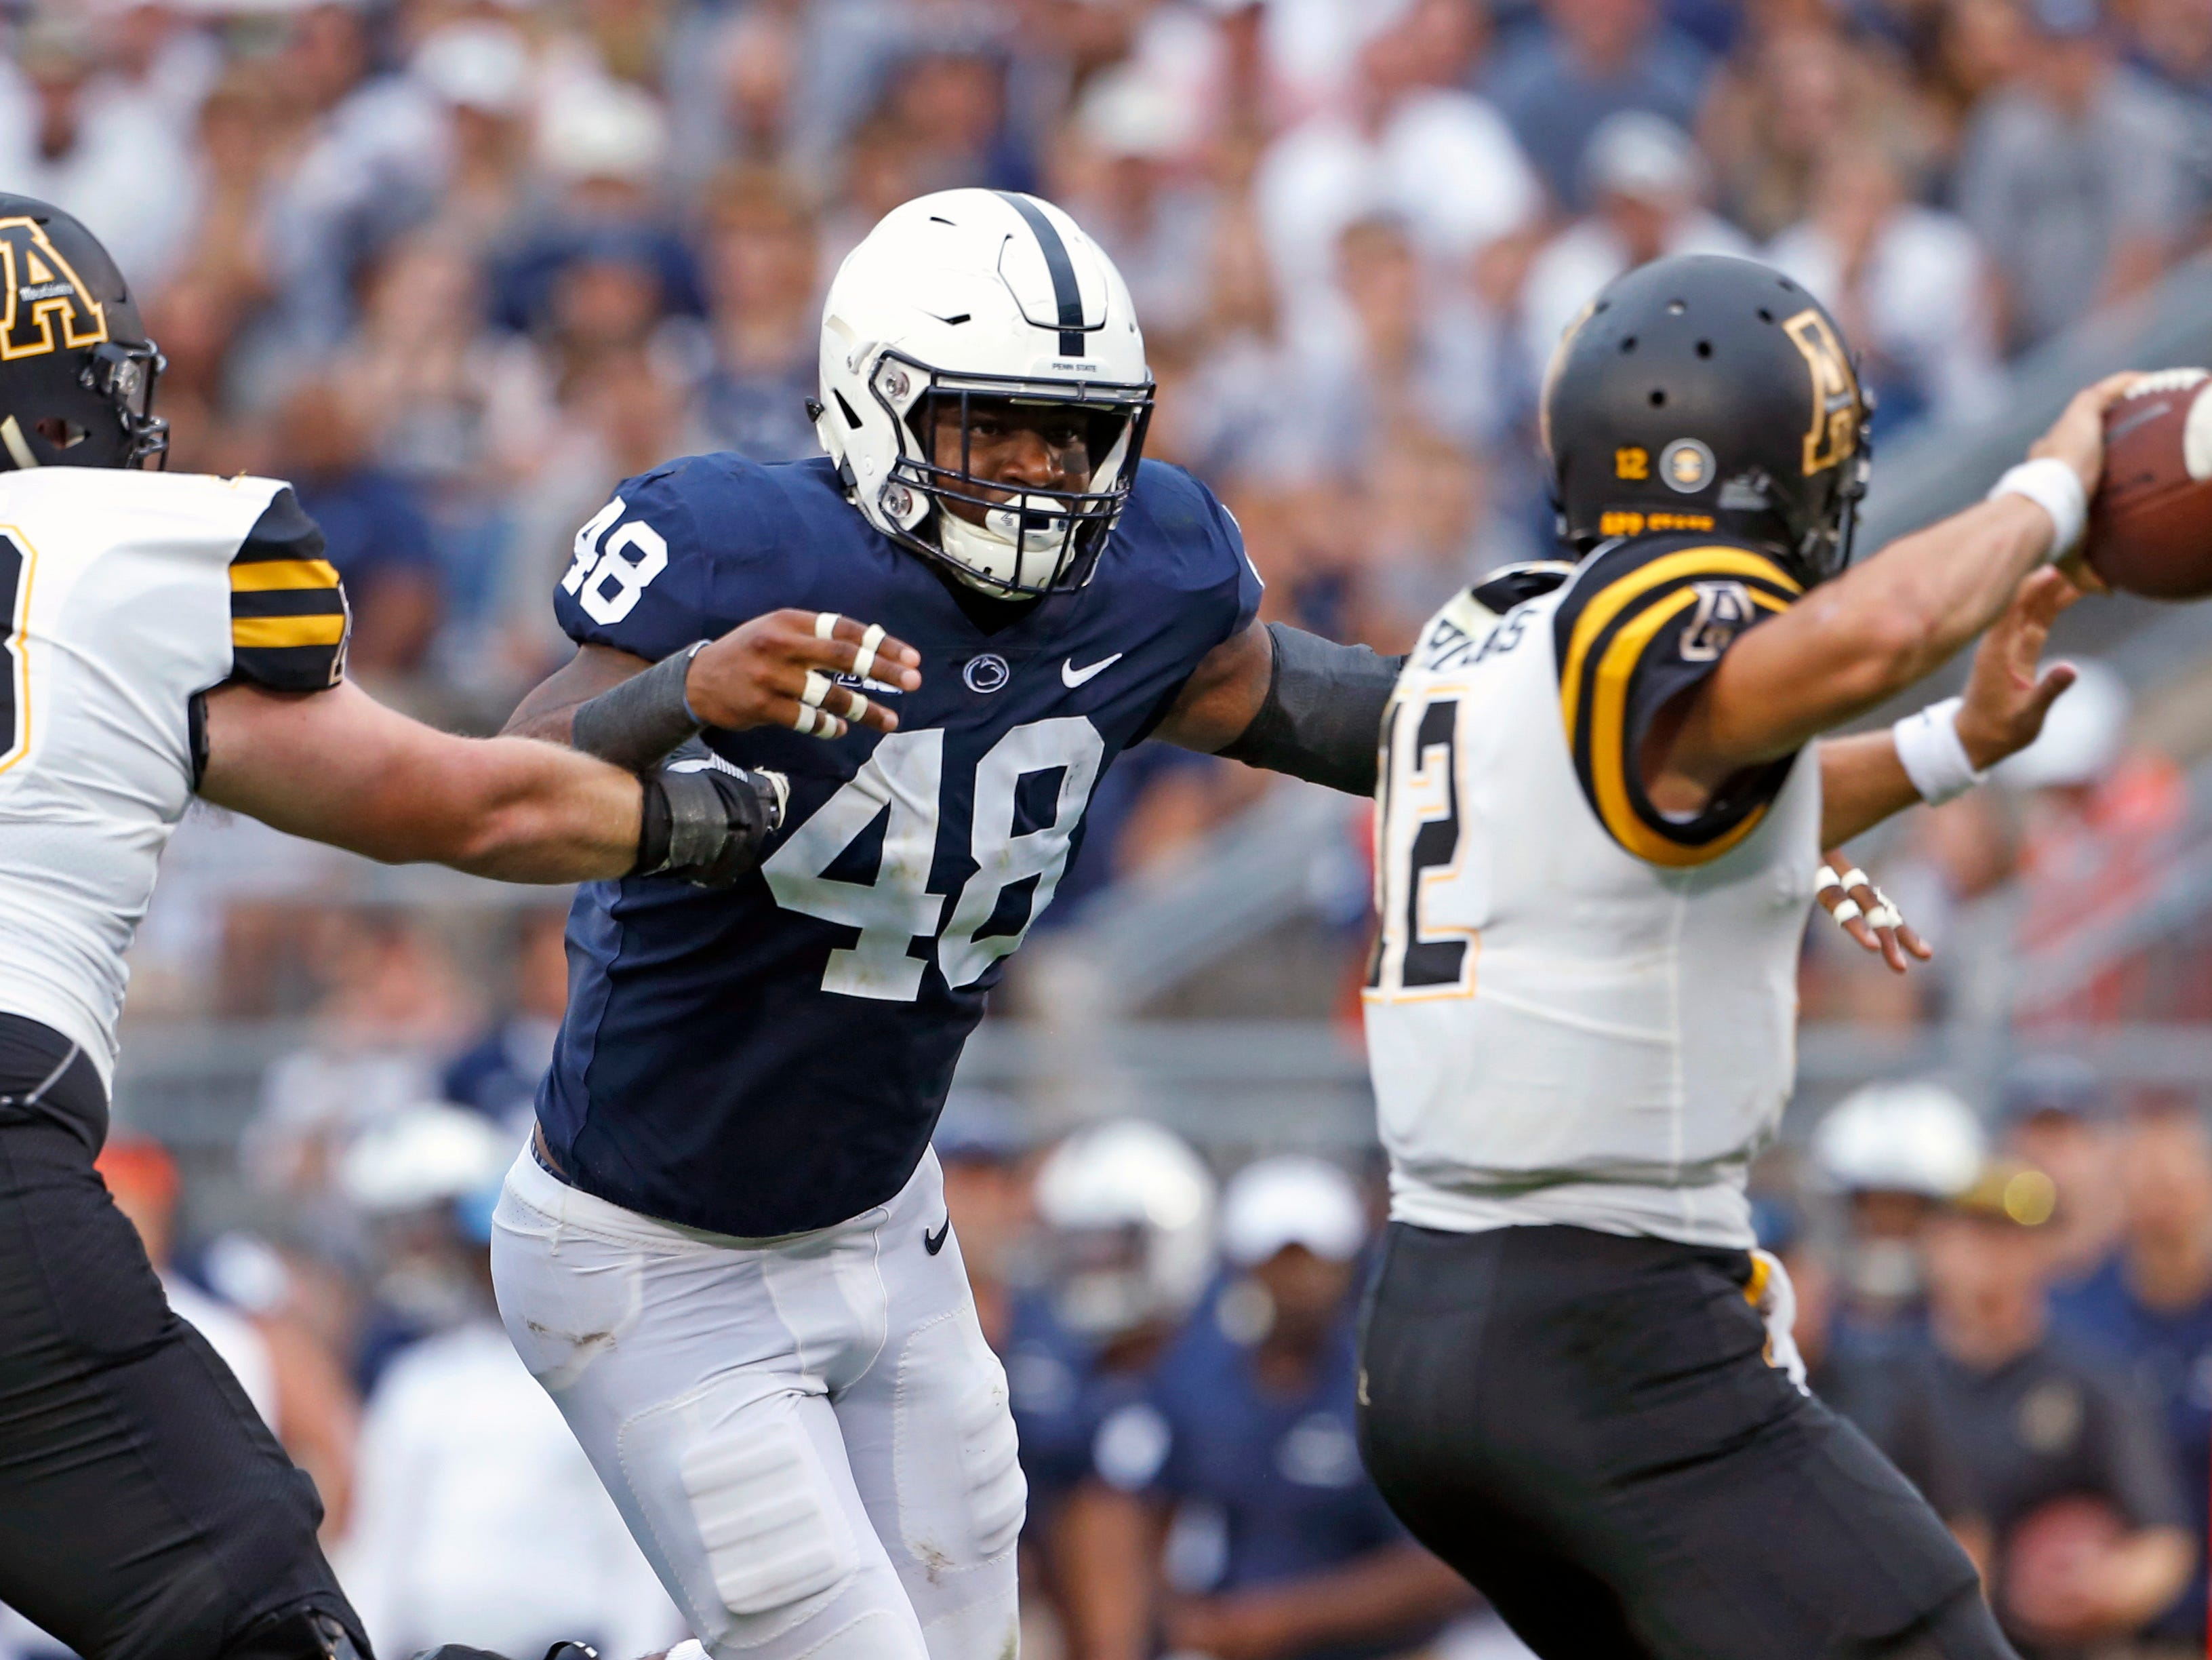 Penn State's Shareef Miller (48) goes after Appalachian State quarterback Zac Thomas (12) during the second half of an NCAA college football game in State College, Pa., Saturday, Sept. 1, 2018. Penn State won 45-38 in overtime. (AP Photo/Chris Knight)